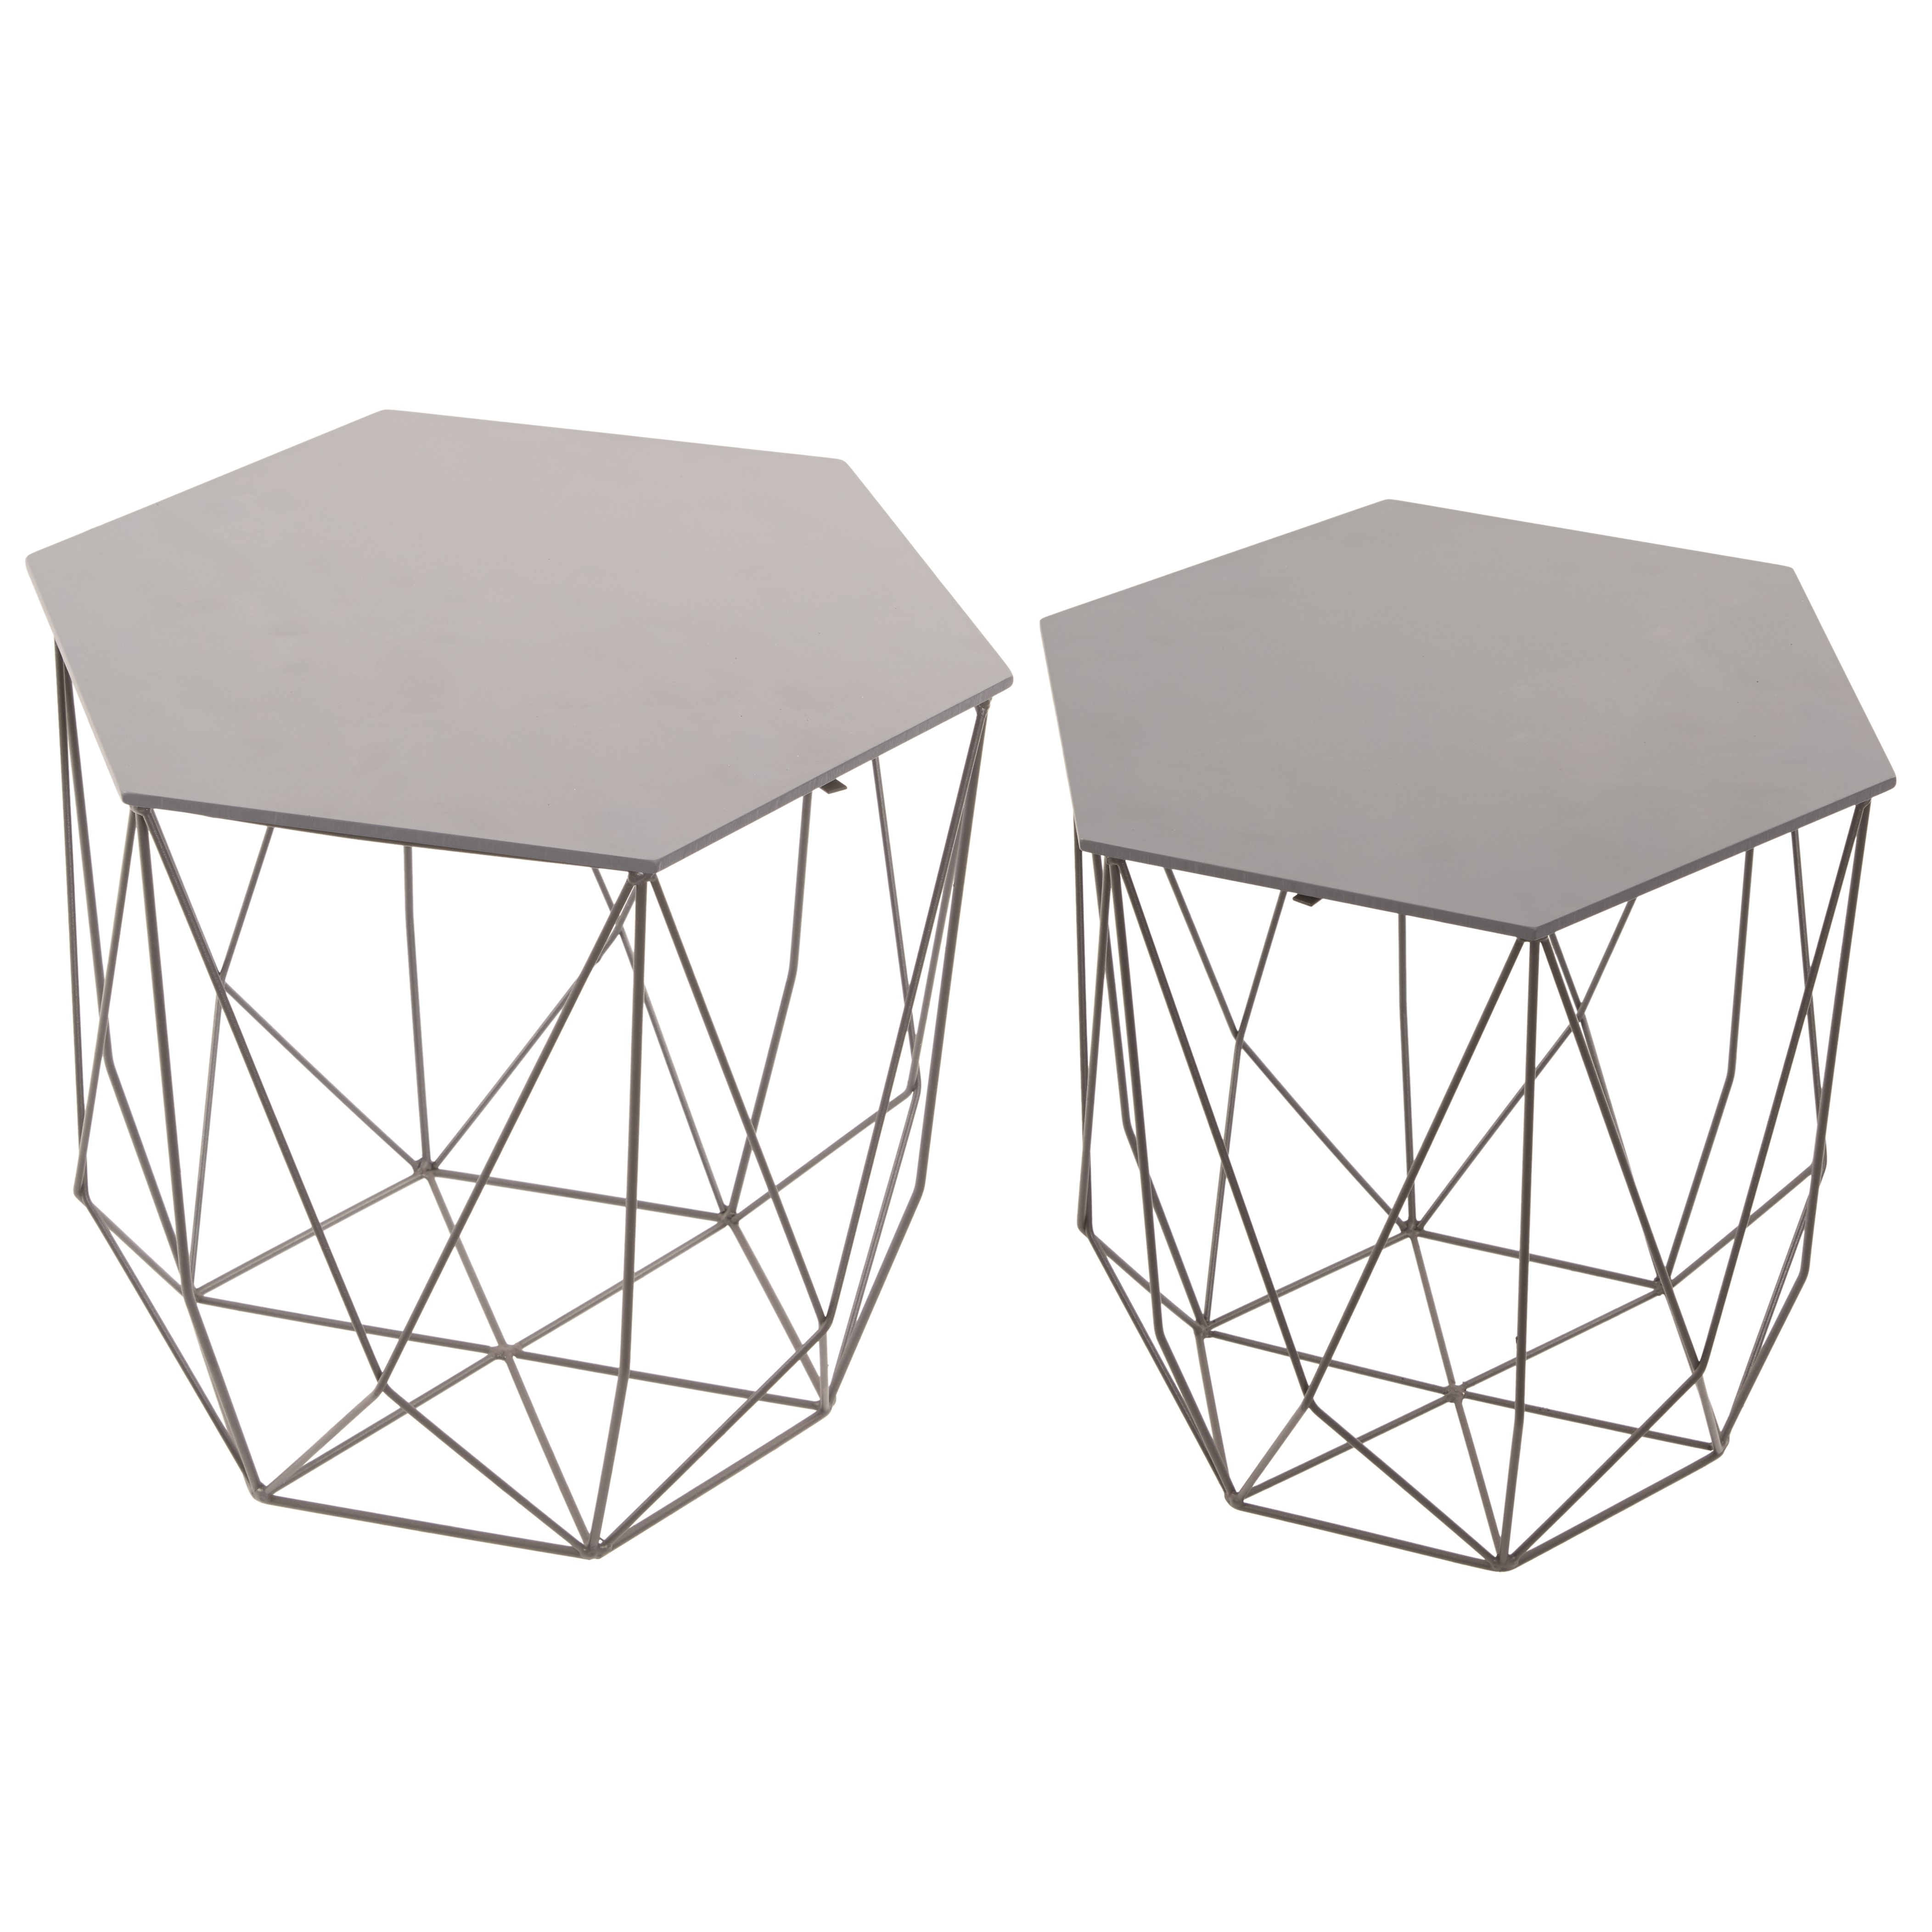 Hexagon Grey Six Sided Wire & Wood Side Table Set Of 2 with regard to Black Wire Coffee Tables (Image 11 of 30)